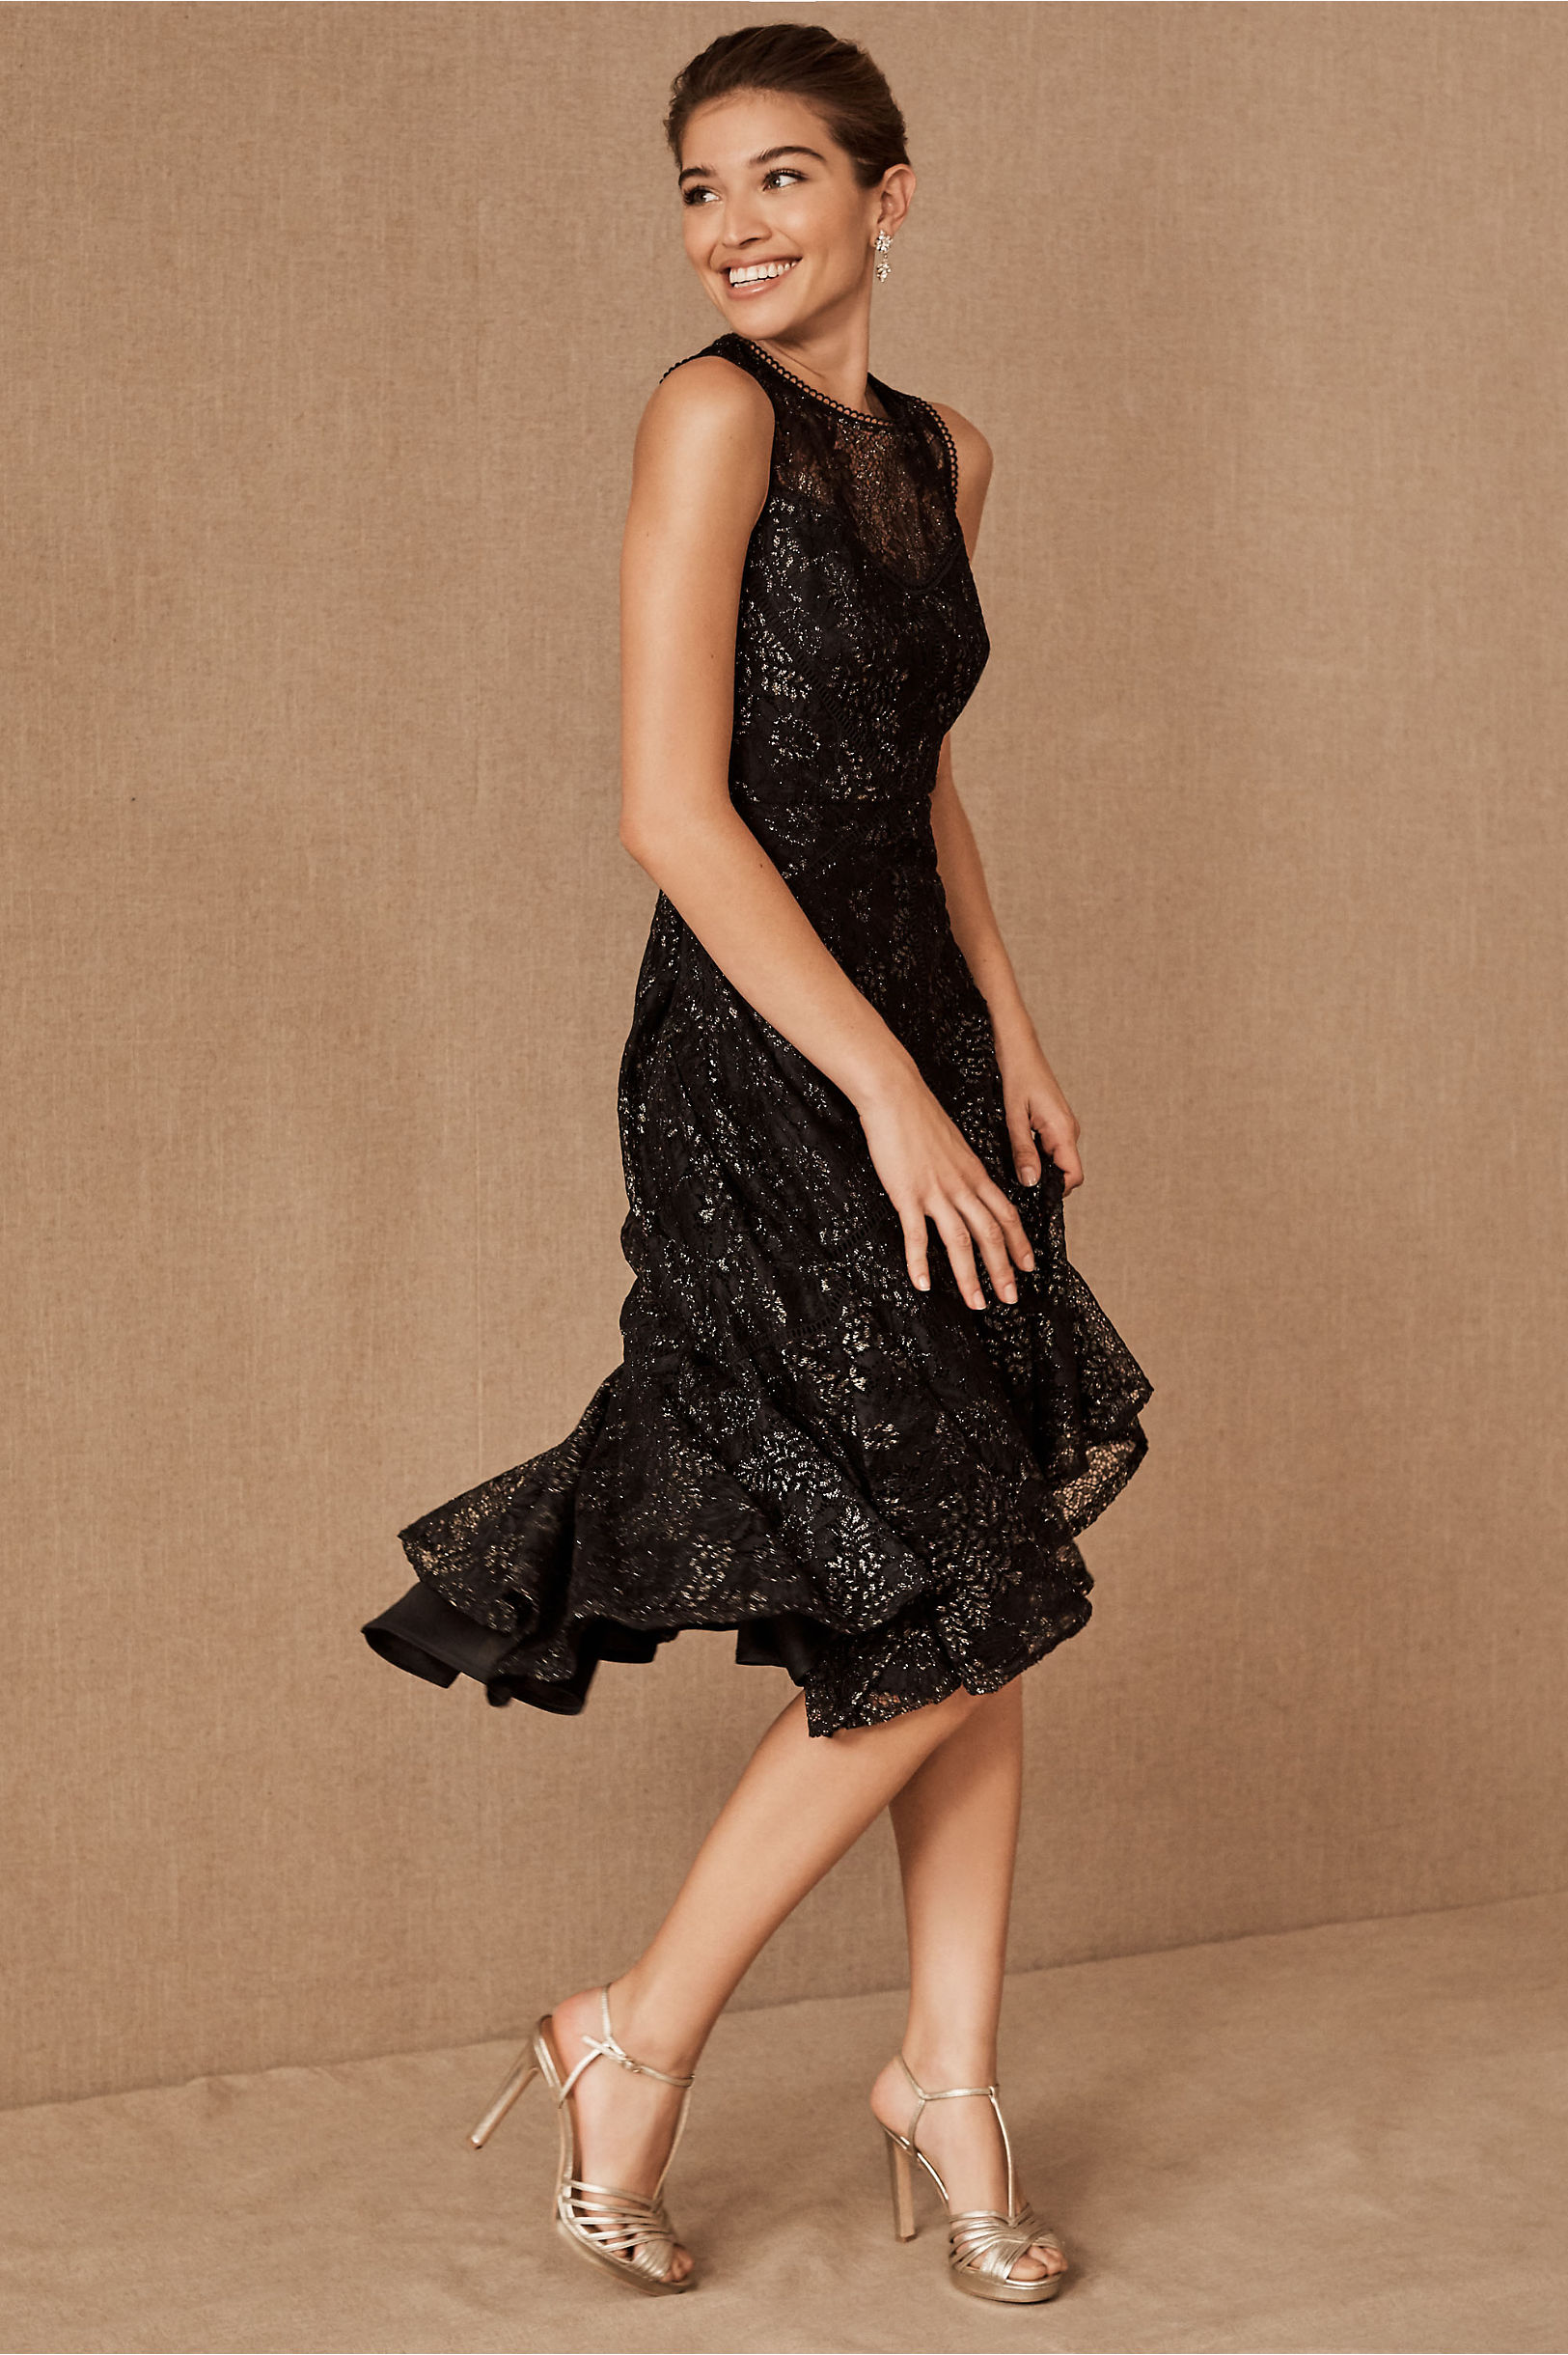 Black Flapper Dresses, 1920s Black Dresses BHLDN Sedelle Dress $245.00 AT vintagedancer.com